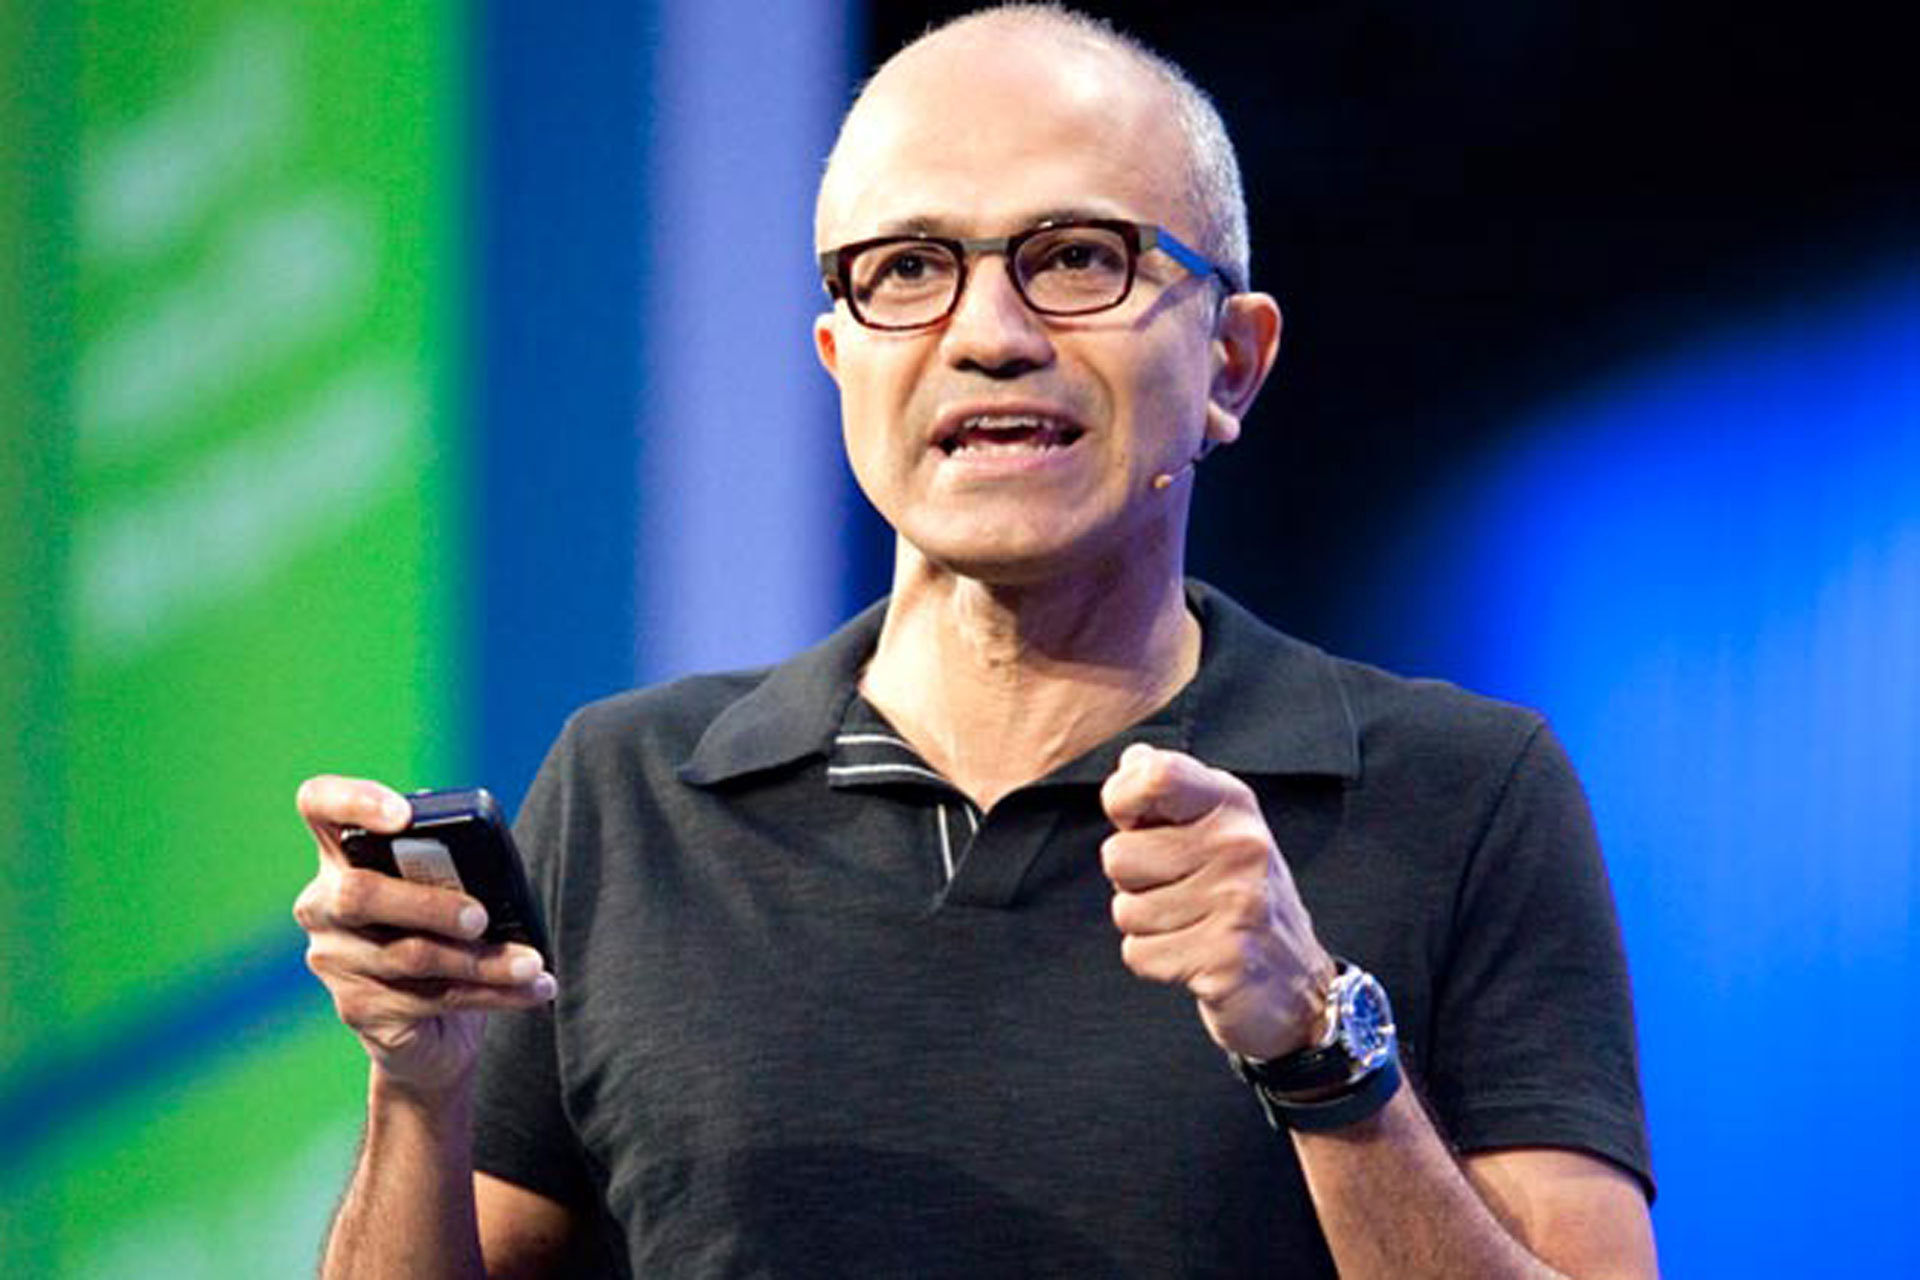 Microsoft's CEO Announces New Changes at the Helm of the Company